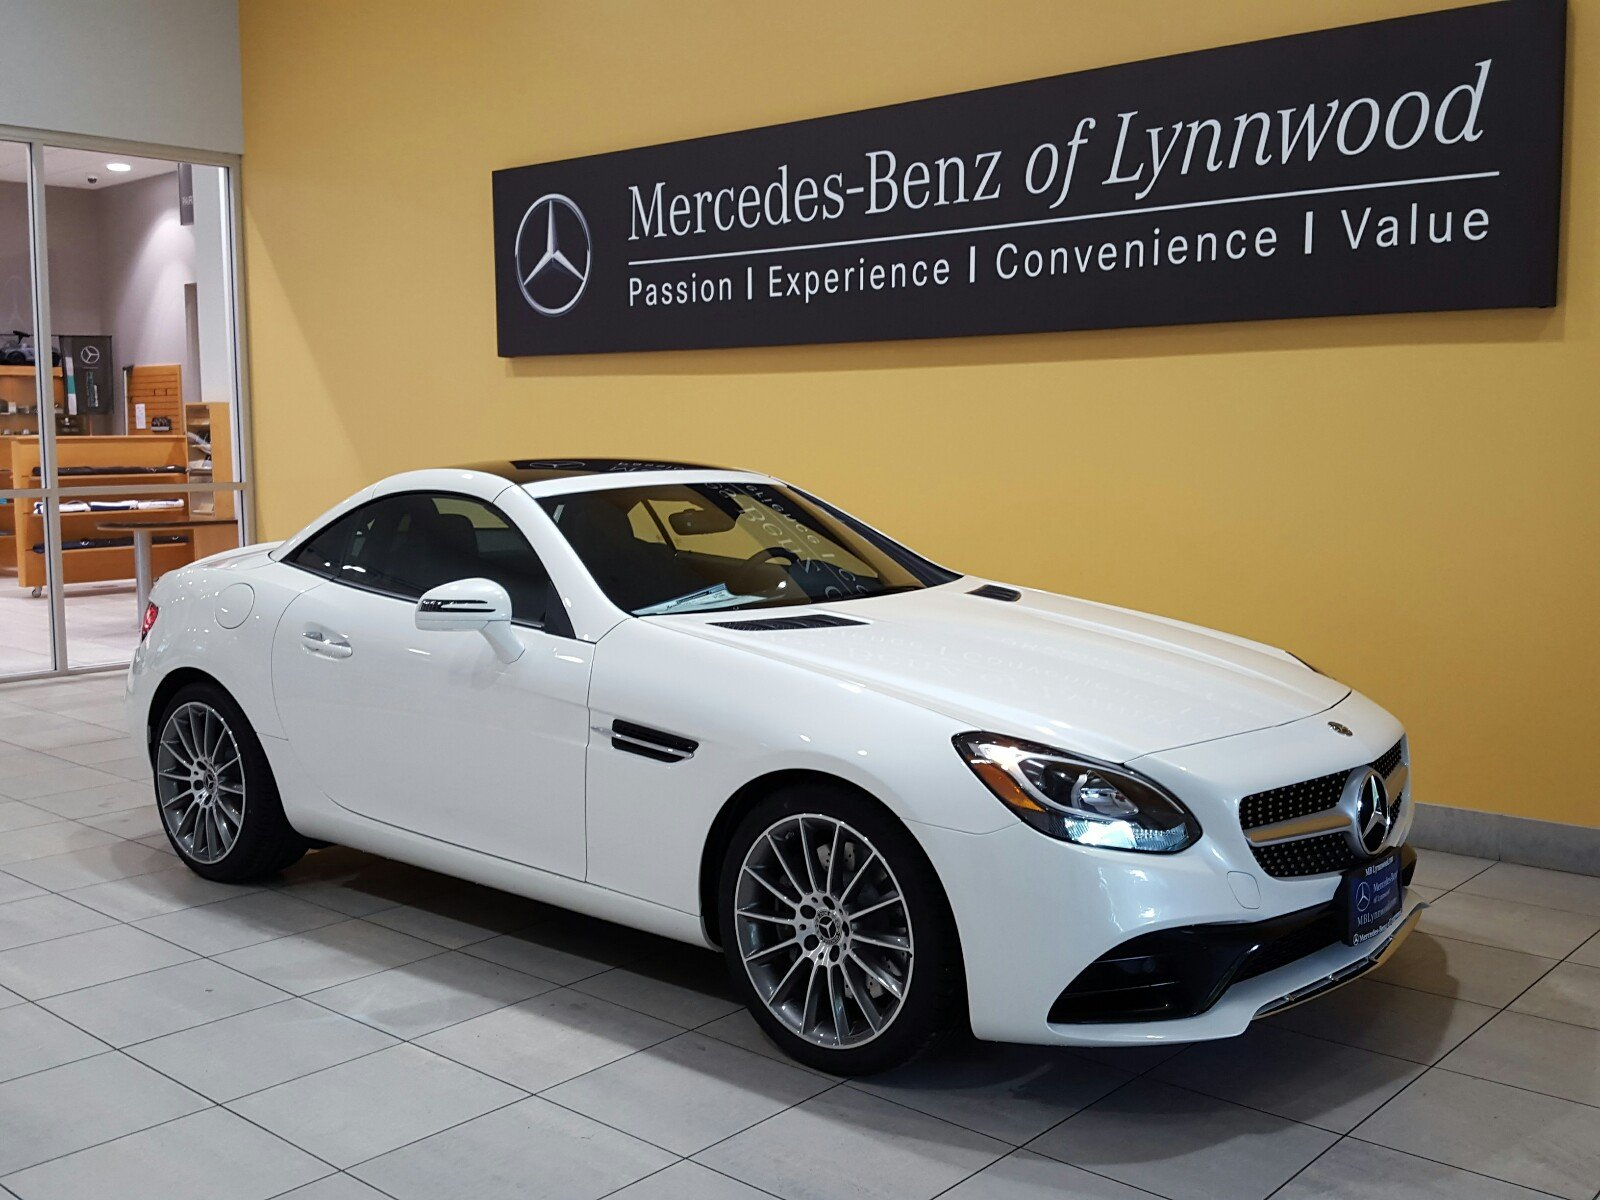 New 2018 mercedes benz slc slc 300 roadster roadster in for Mercedes benz financial payment address